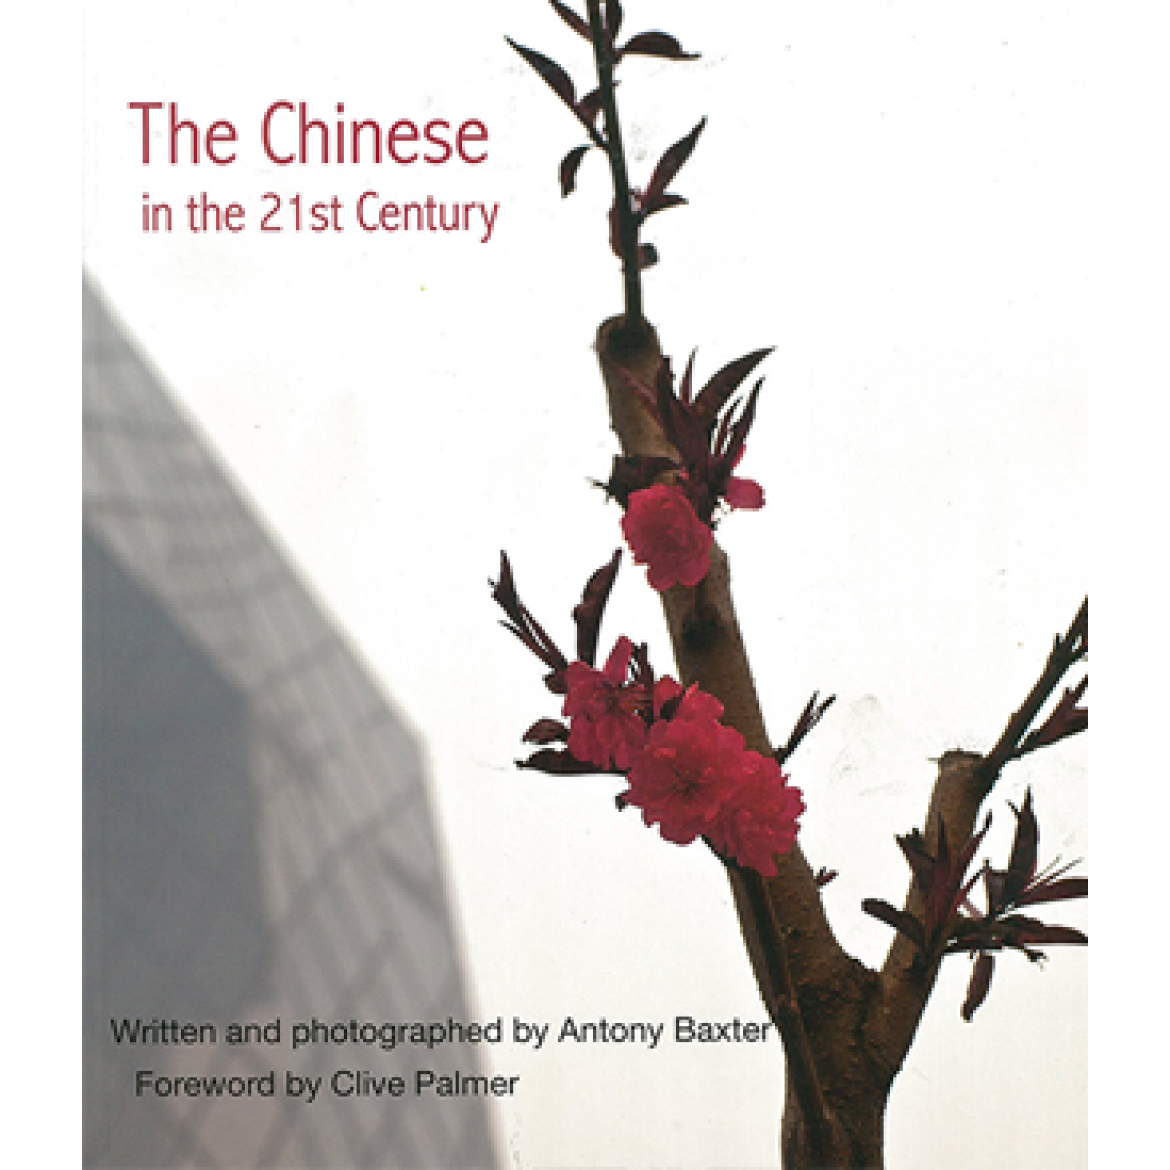 The Chinese in the 21st Century - Antony Baxter